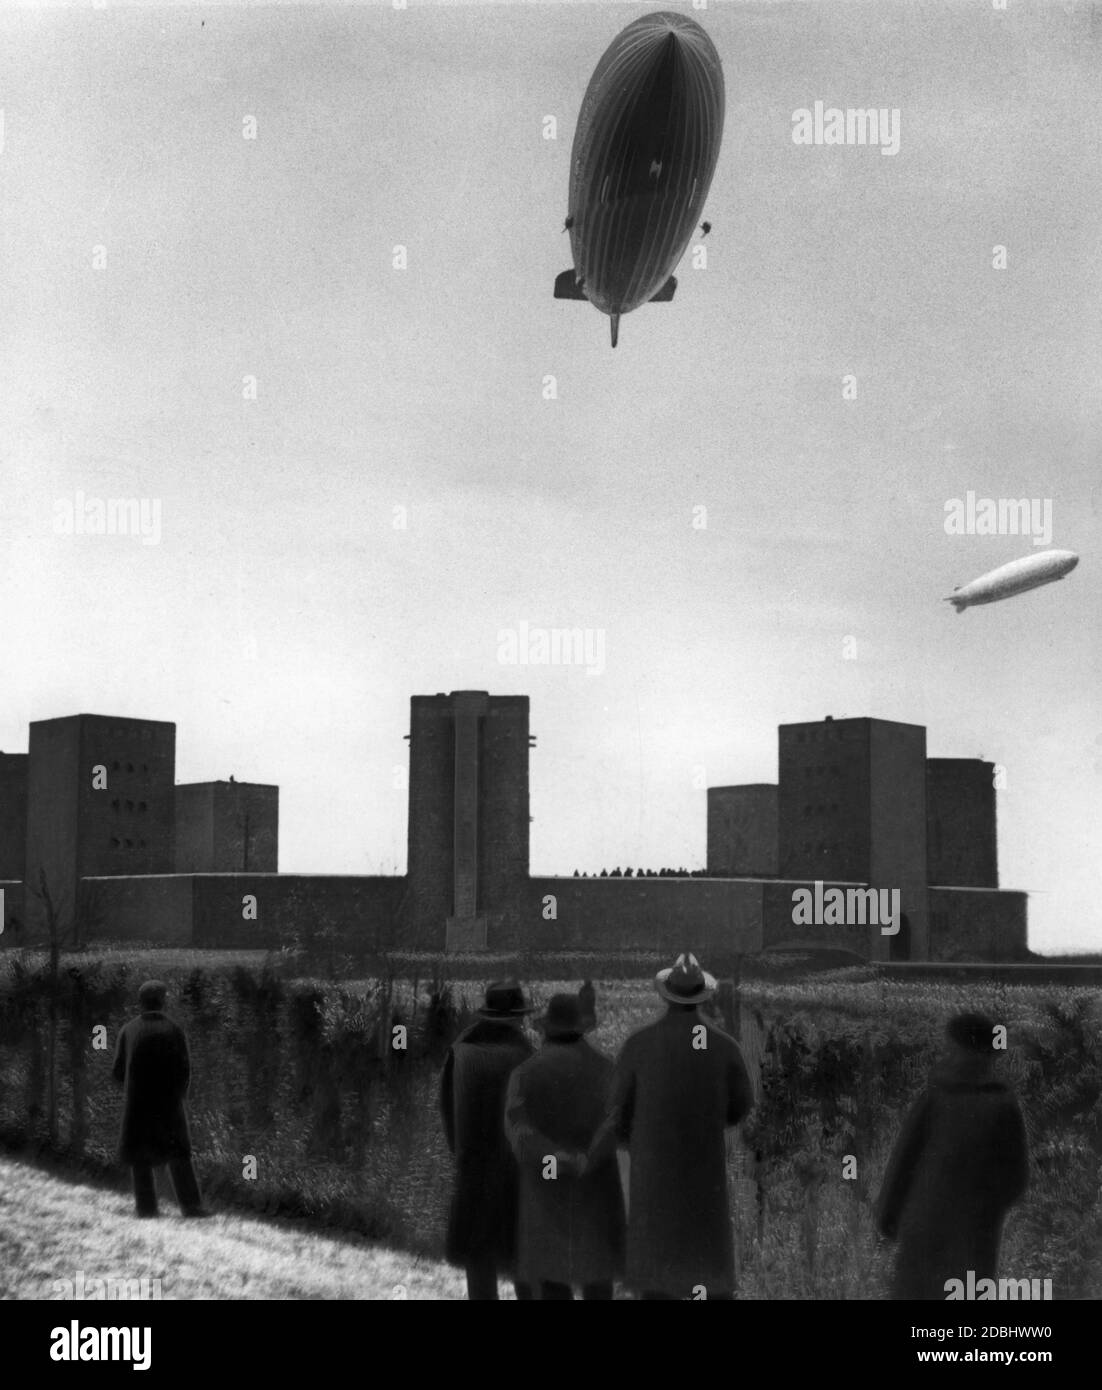 Hindenburg (LZ 129) and Graf Zeppelin (LZ 127) above the Tannenberg Monument in East Prussia - the burial place of Hindenburg. Stock Photo